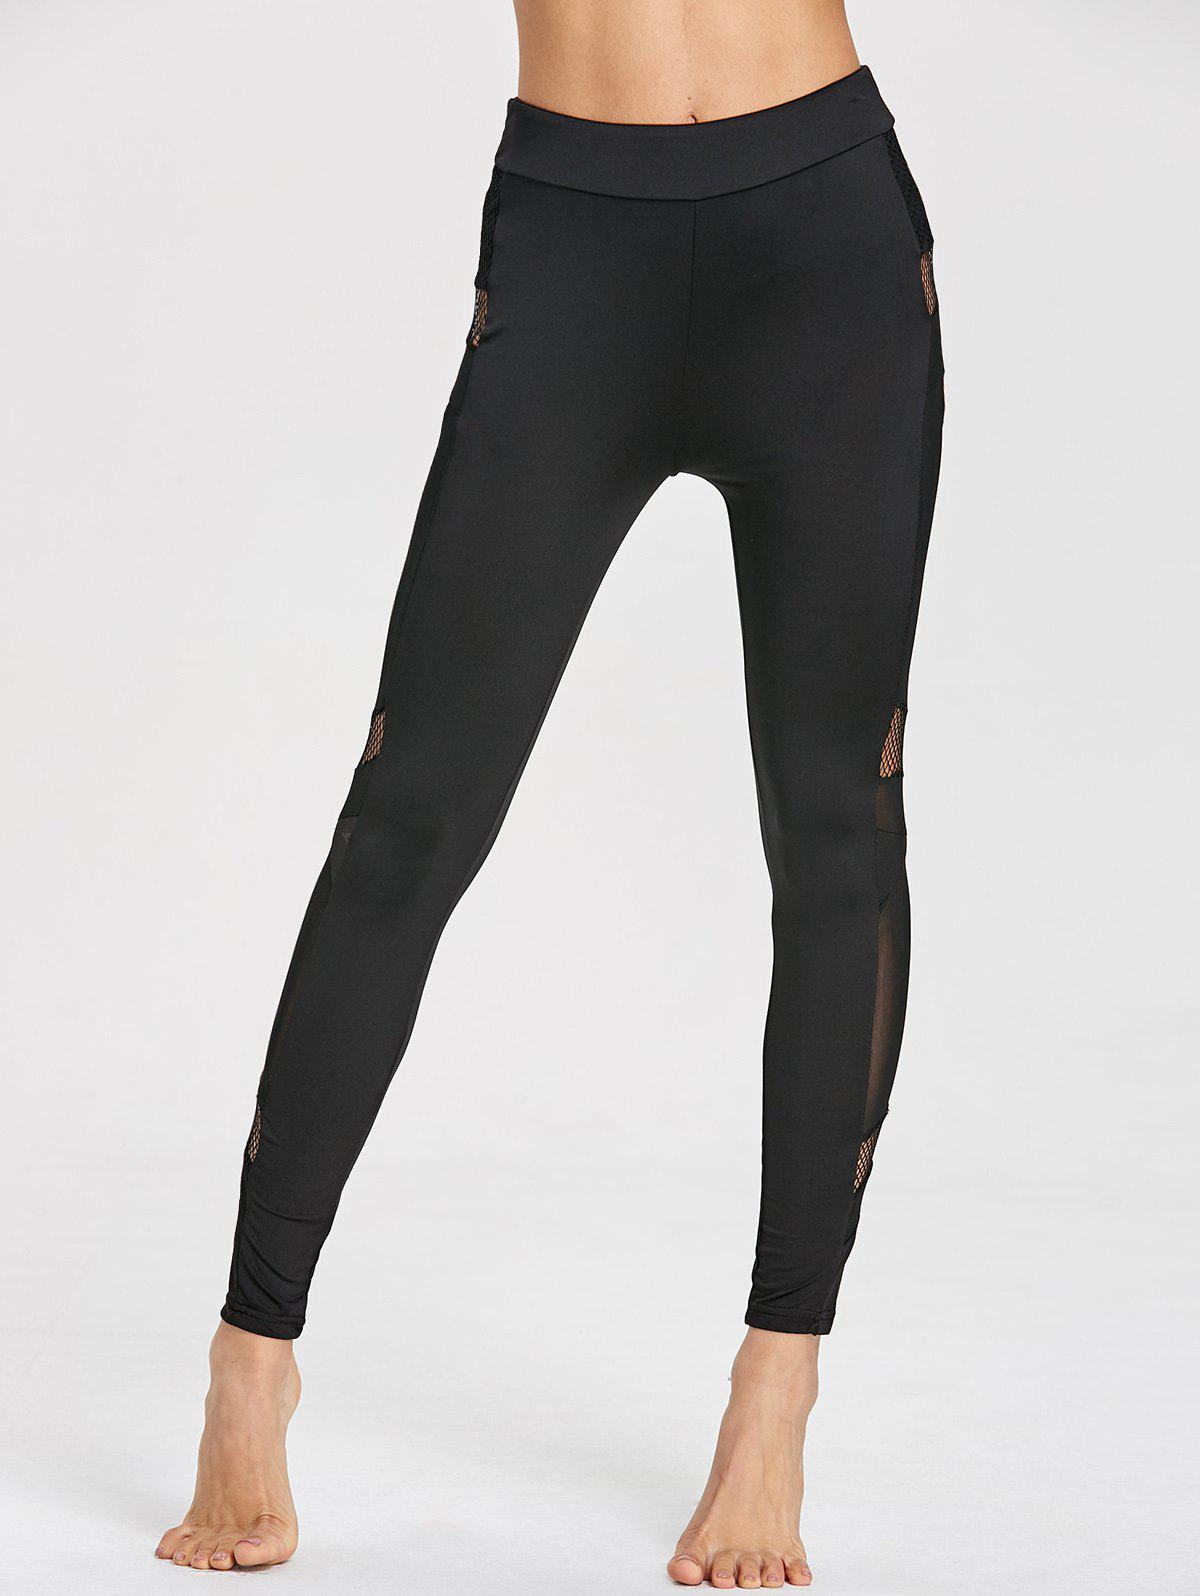 High Waist Mesh Insert Gym Leggings - BLACK XL